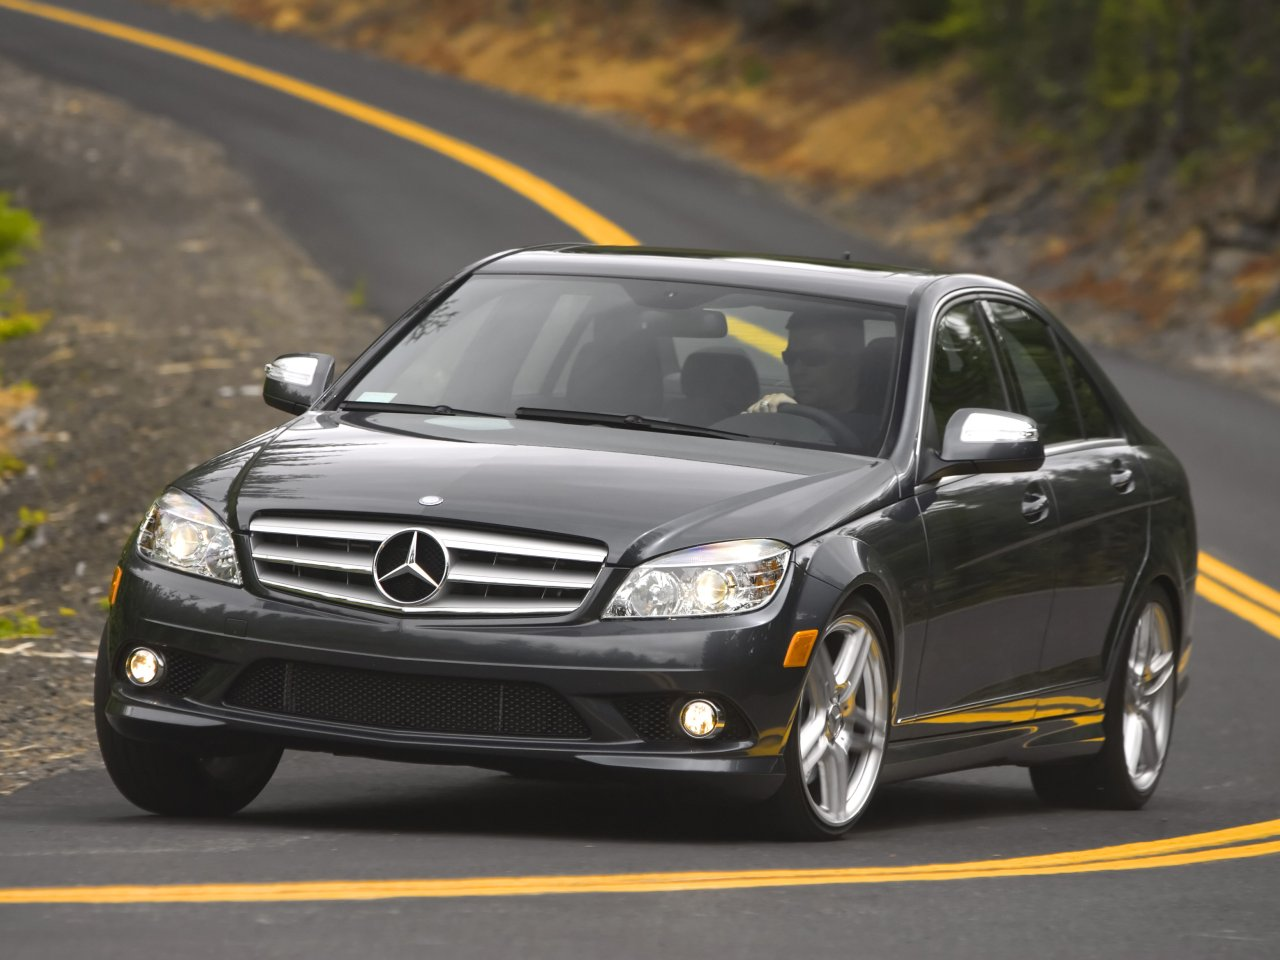 2012 mercedes benz c class new car modification review for Mercedes benz cars pictures